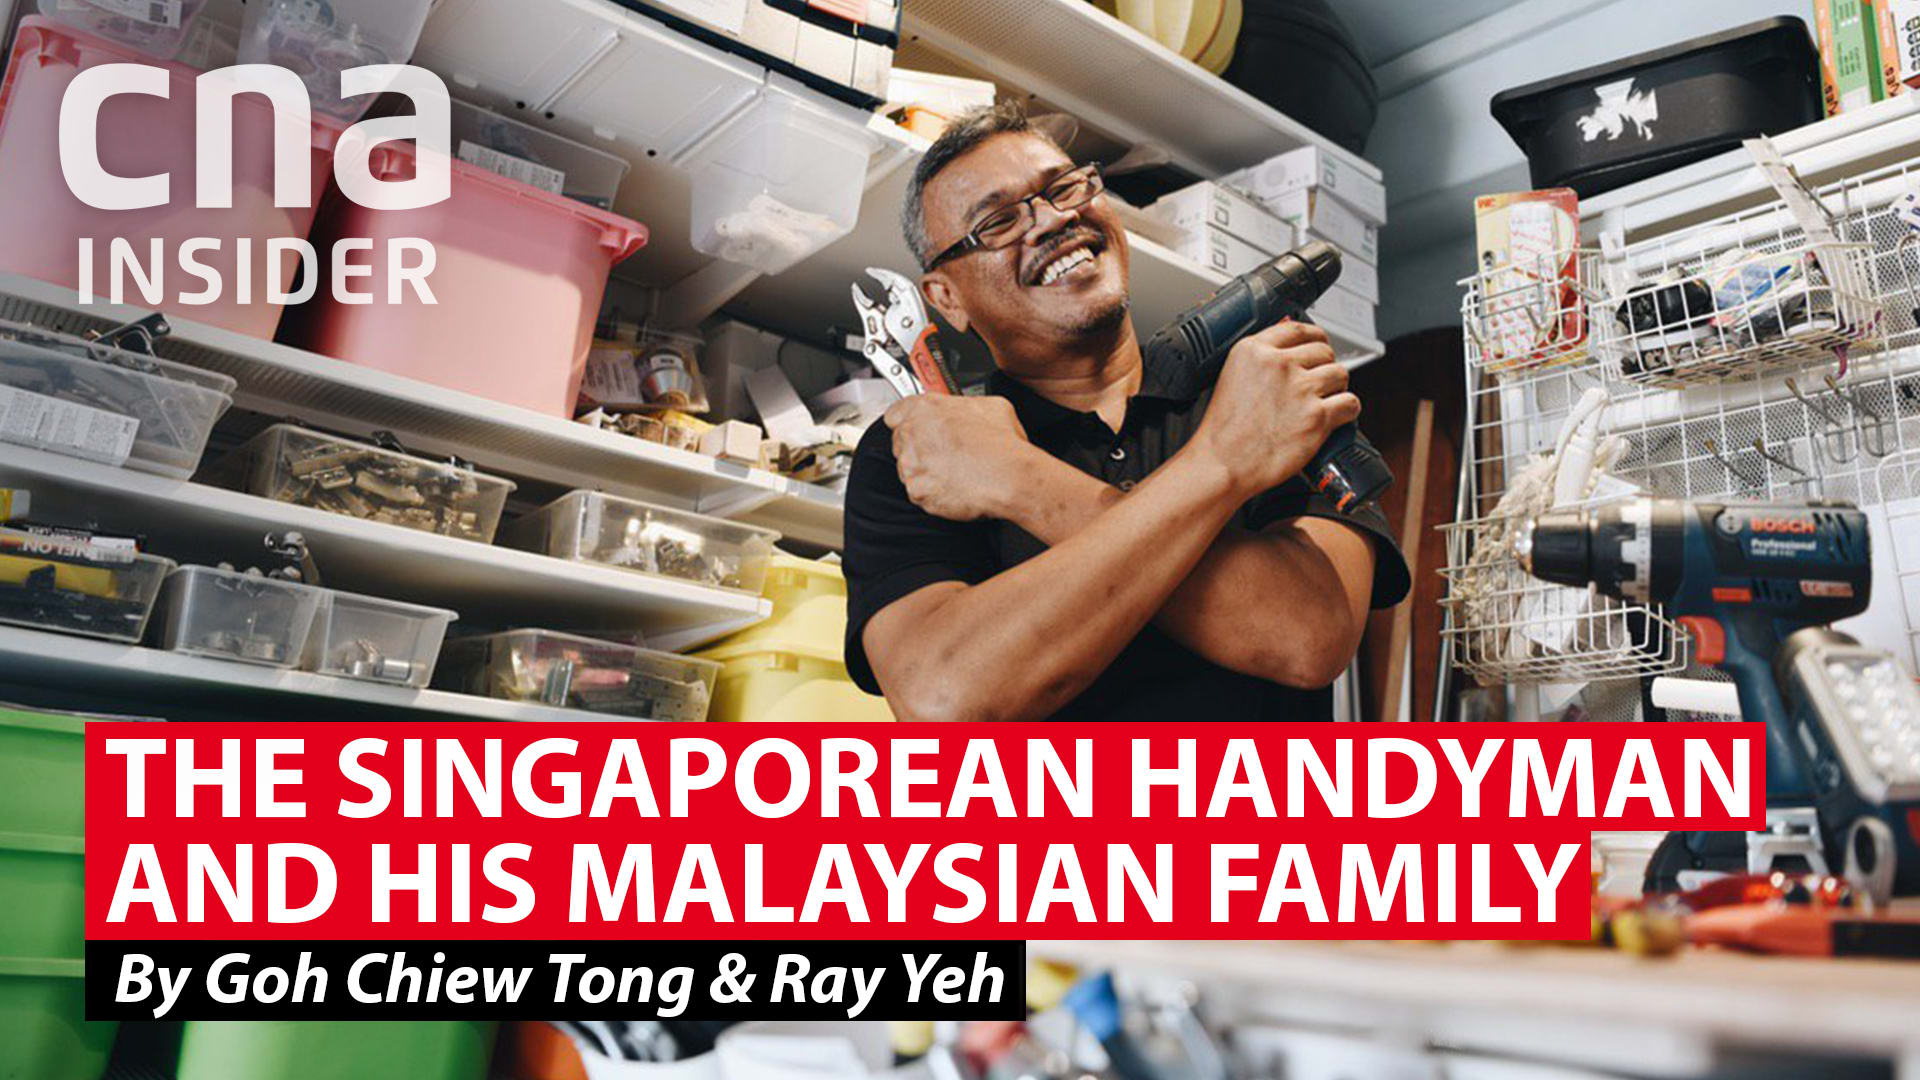 The Singaporean handyman and his Malaysian family